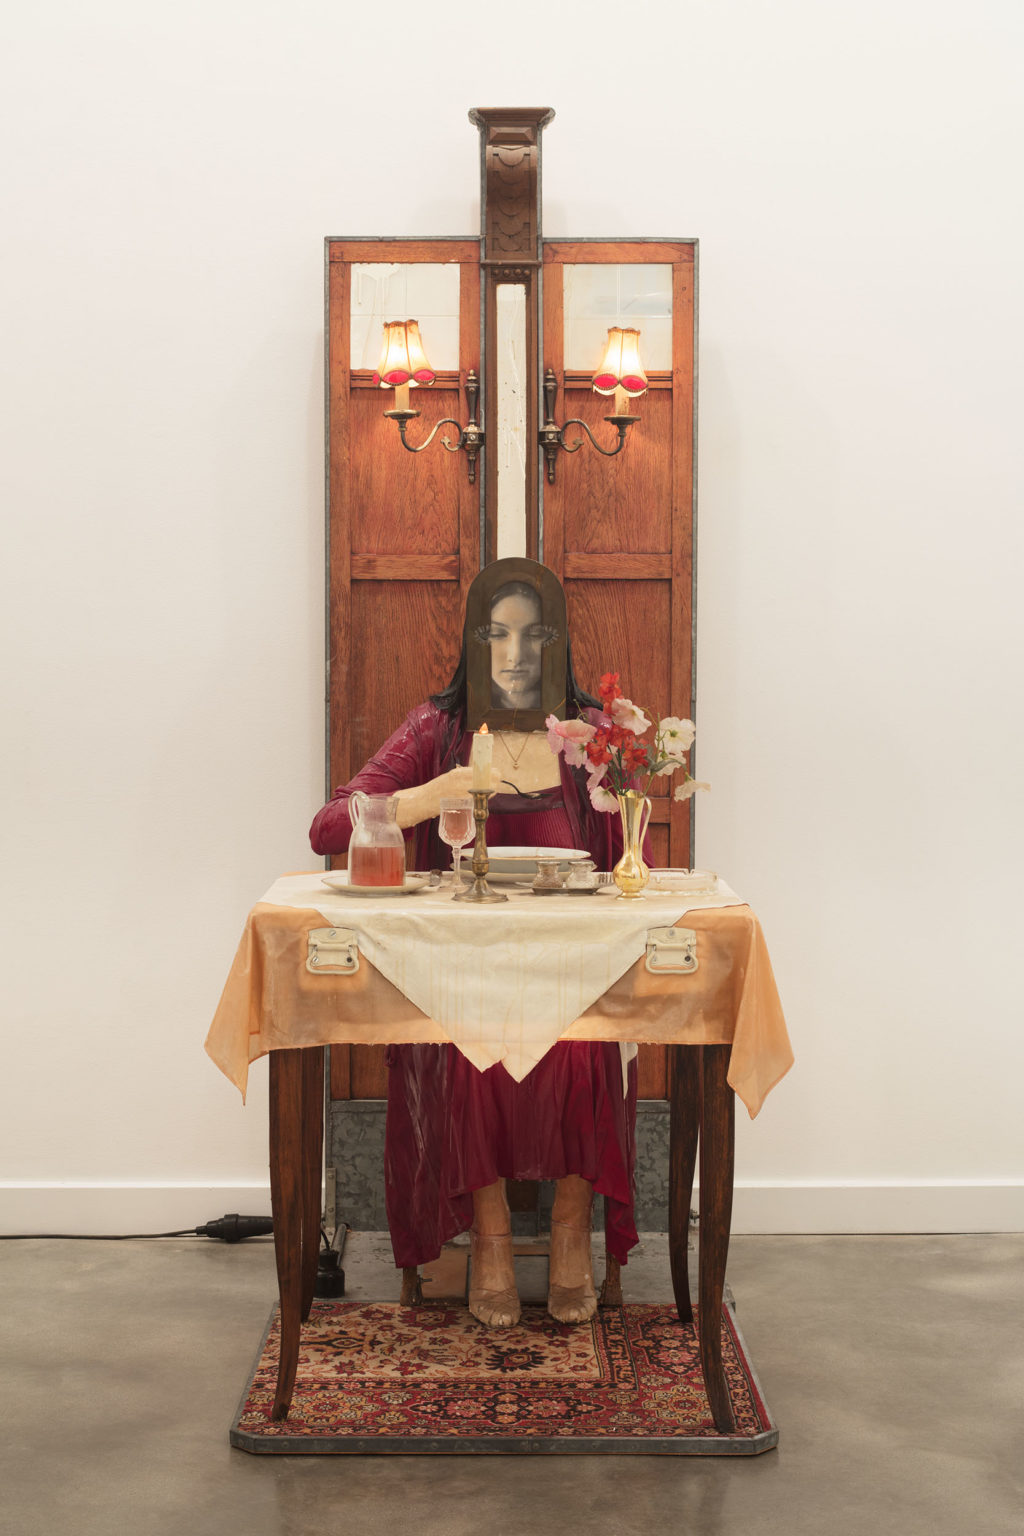 Installation view of Edward and Nancy Kienholz, The Soup Course at the She-She Cafe, detail, 1982 at ICA Miami